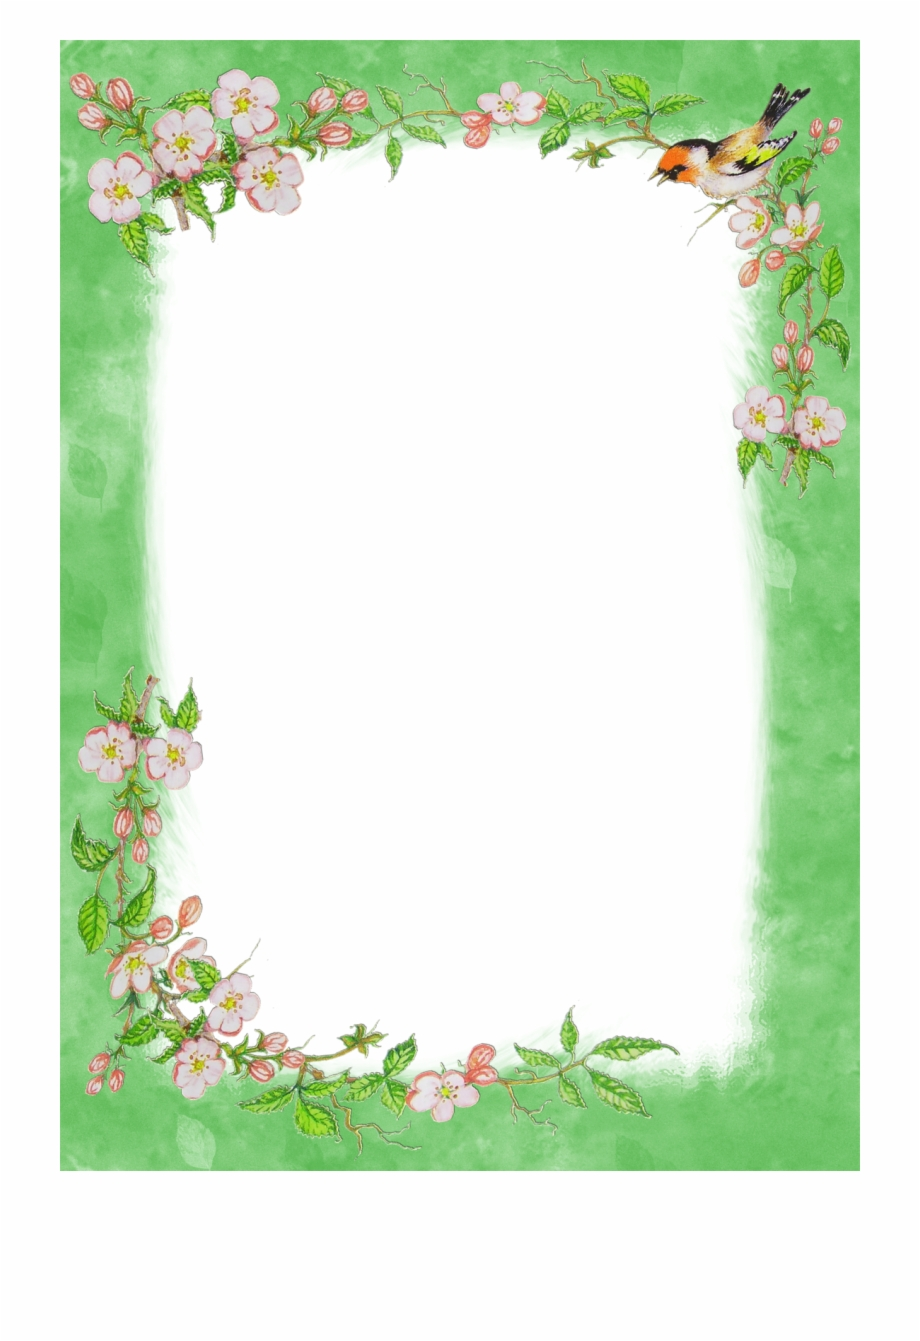 bingkai picture frame transparent png download 1417730 vippng bingkai picture frame transparent